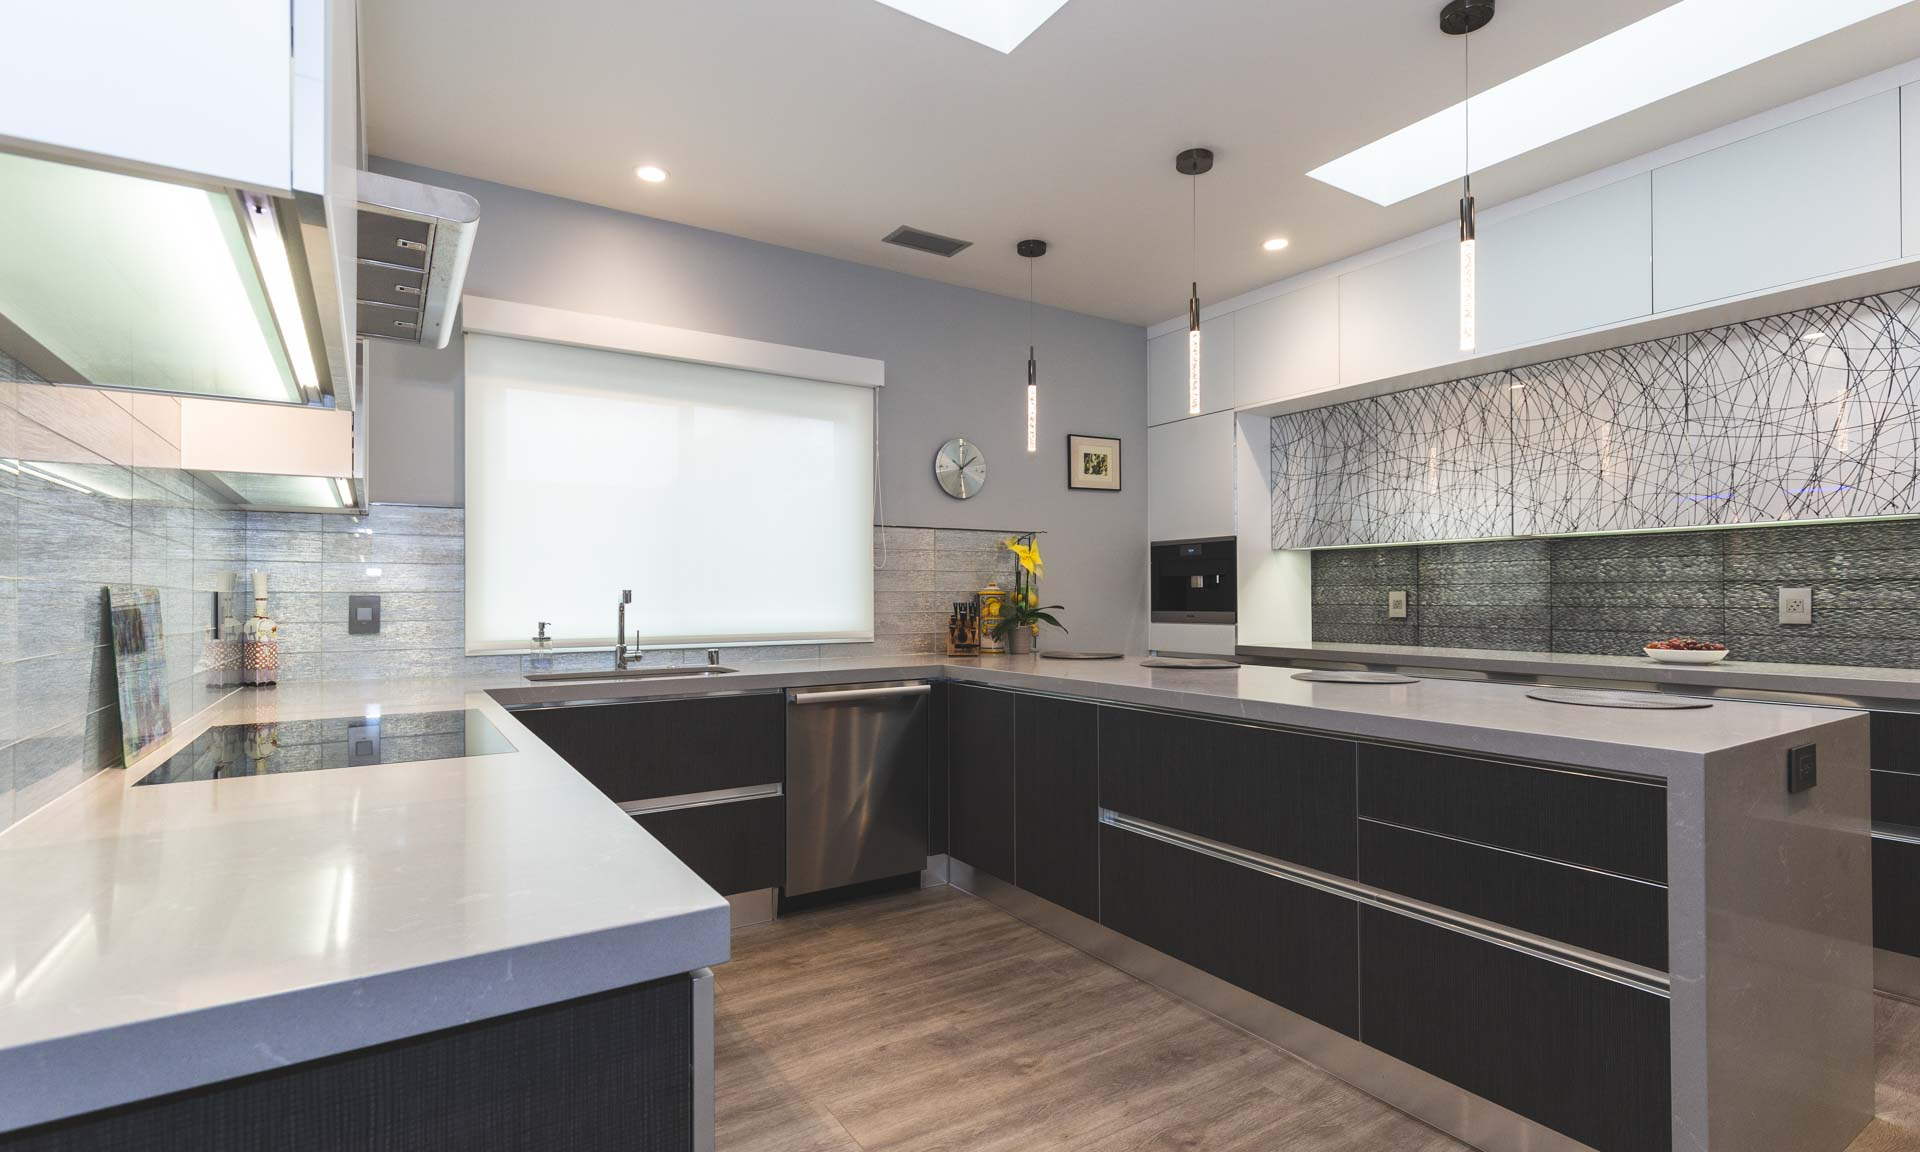 A KITCHEN & BATH CONTRACTOR ON DESIGNING HIS OWN KITCHEN